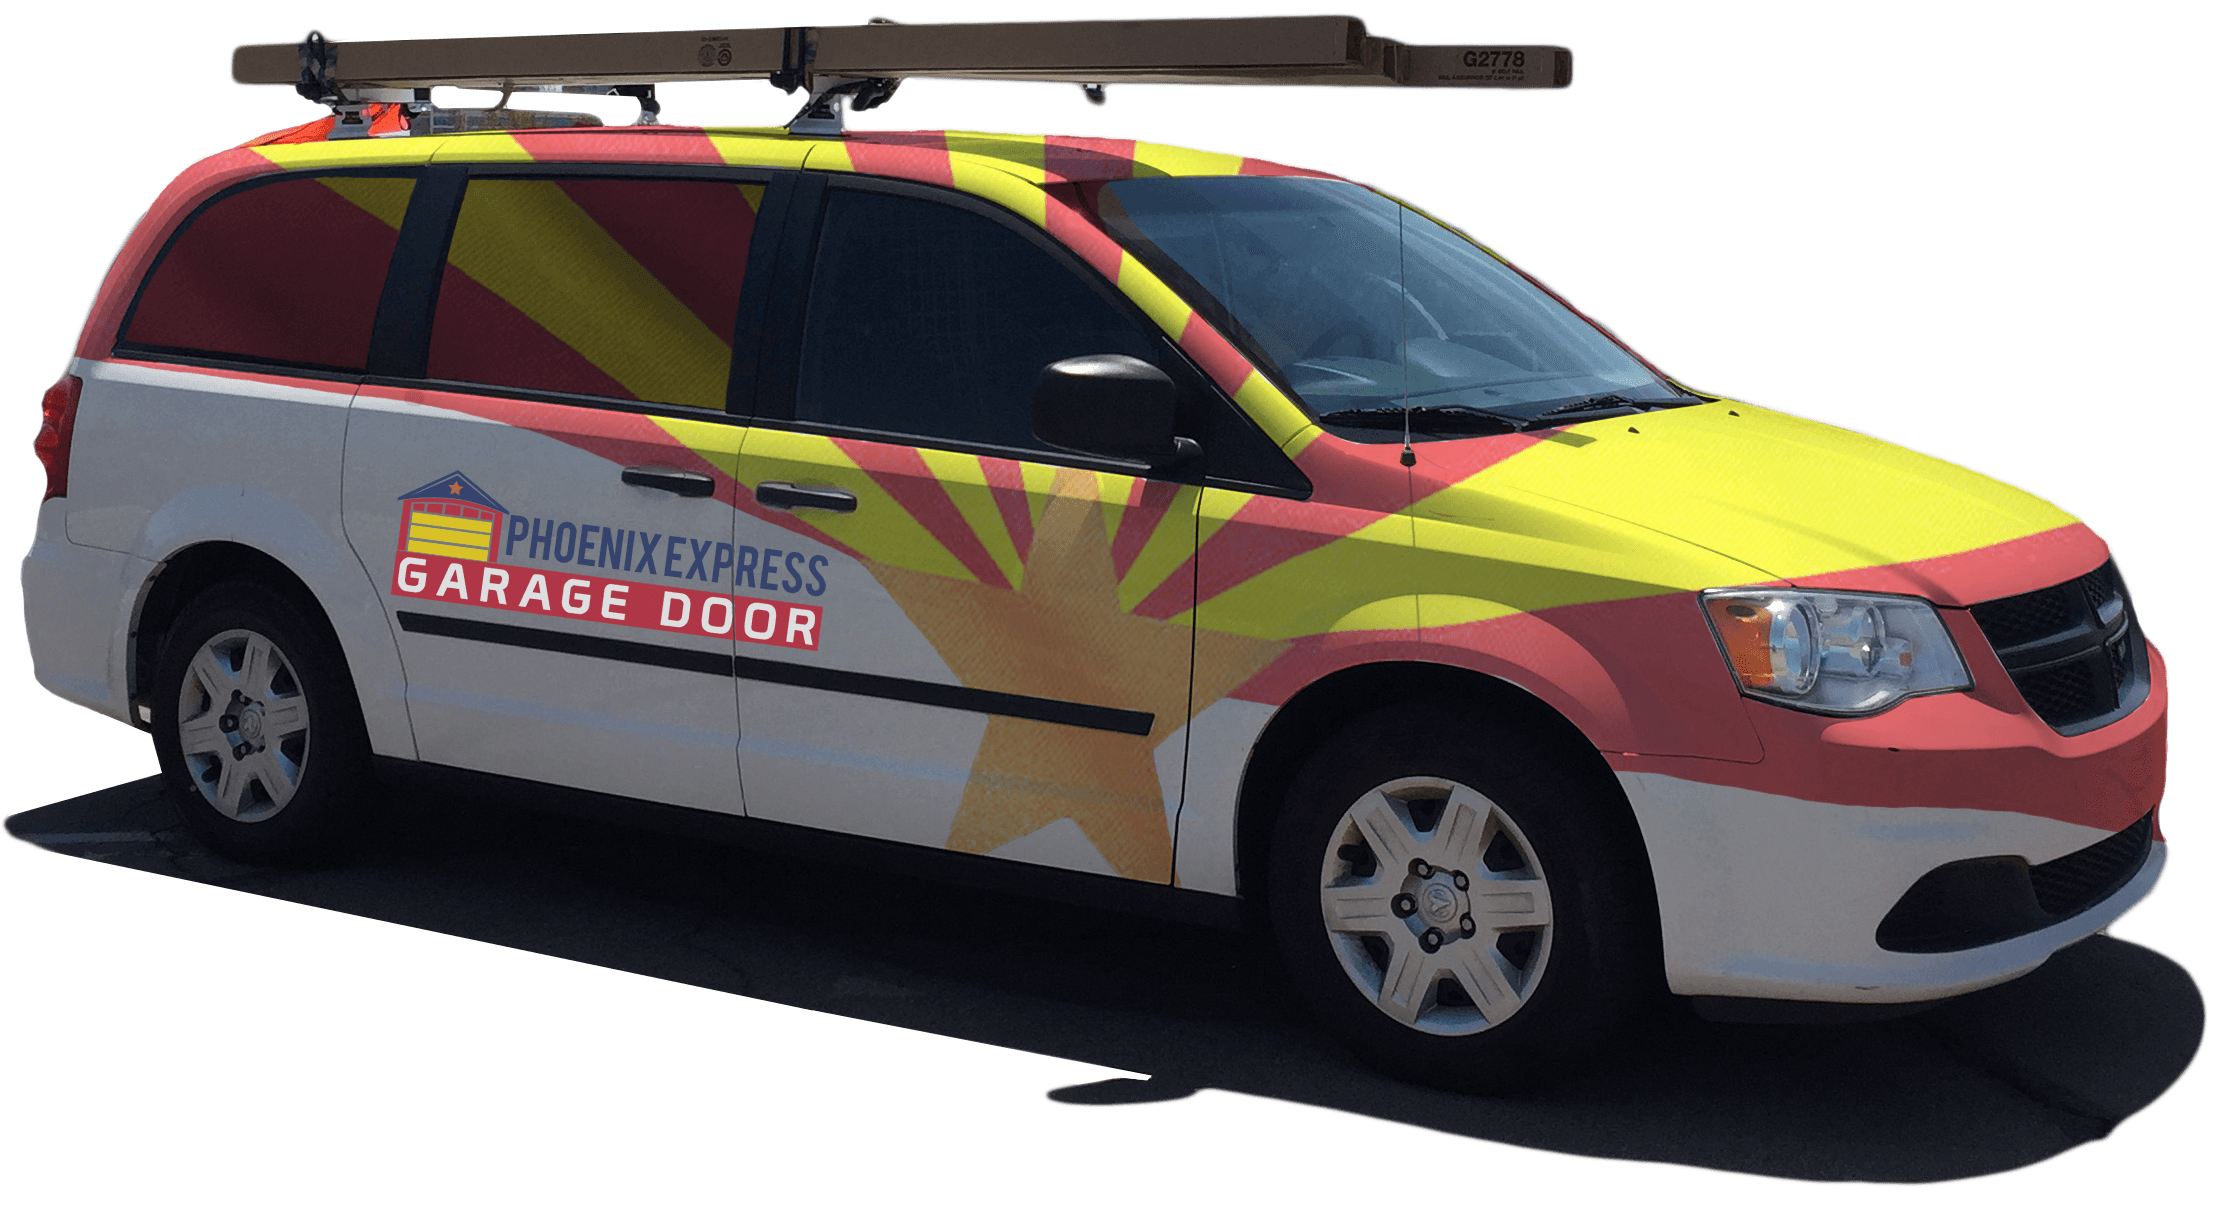 Garage door repair vehicle